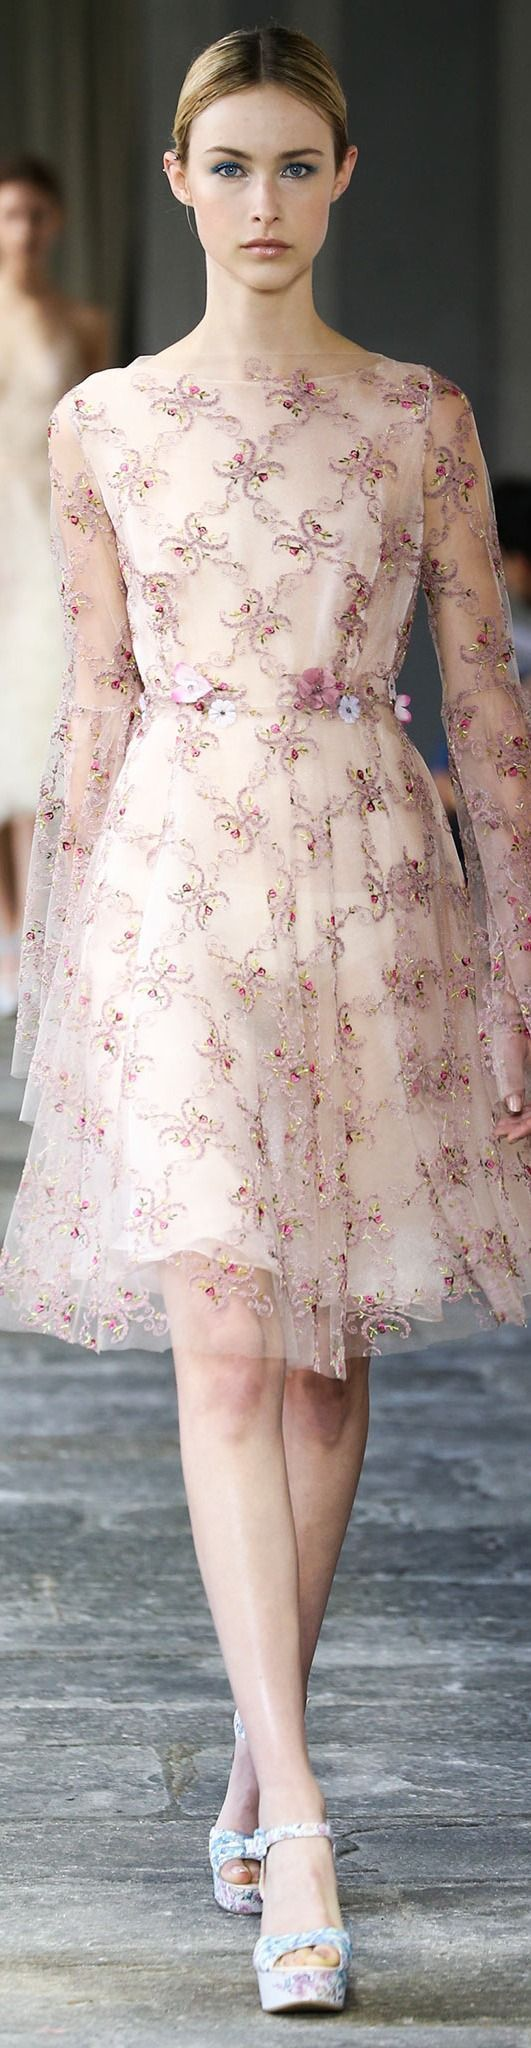 Luisa Beccaria Collection Spring 2015: